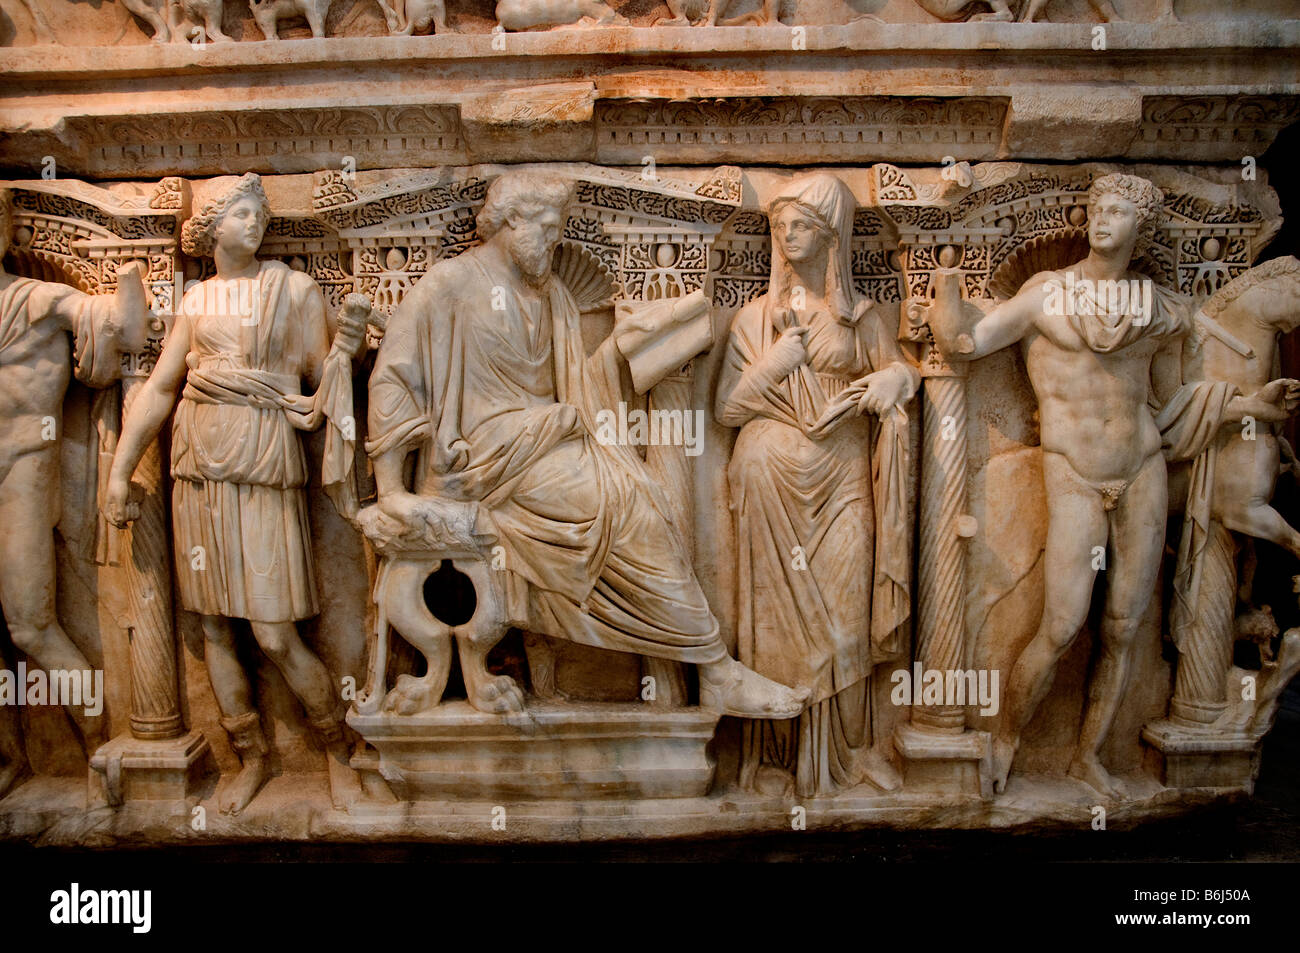 Sarcophagus with depiction of Phaedra Hyppolite marble Tripoli Trablussam Roman Period 2nd century - Stock Image